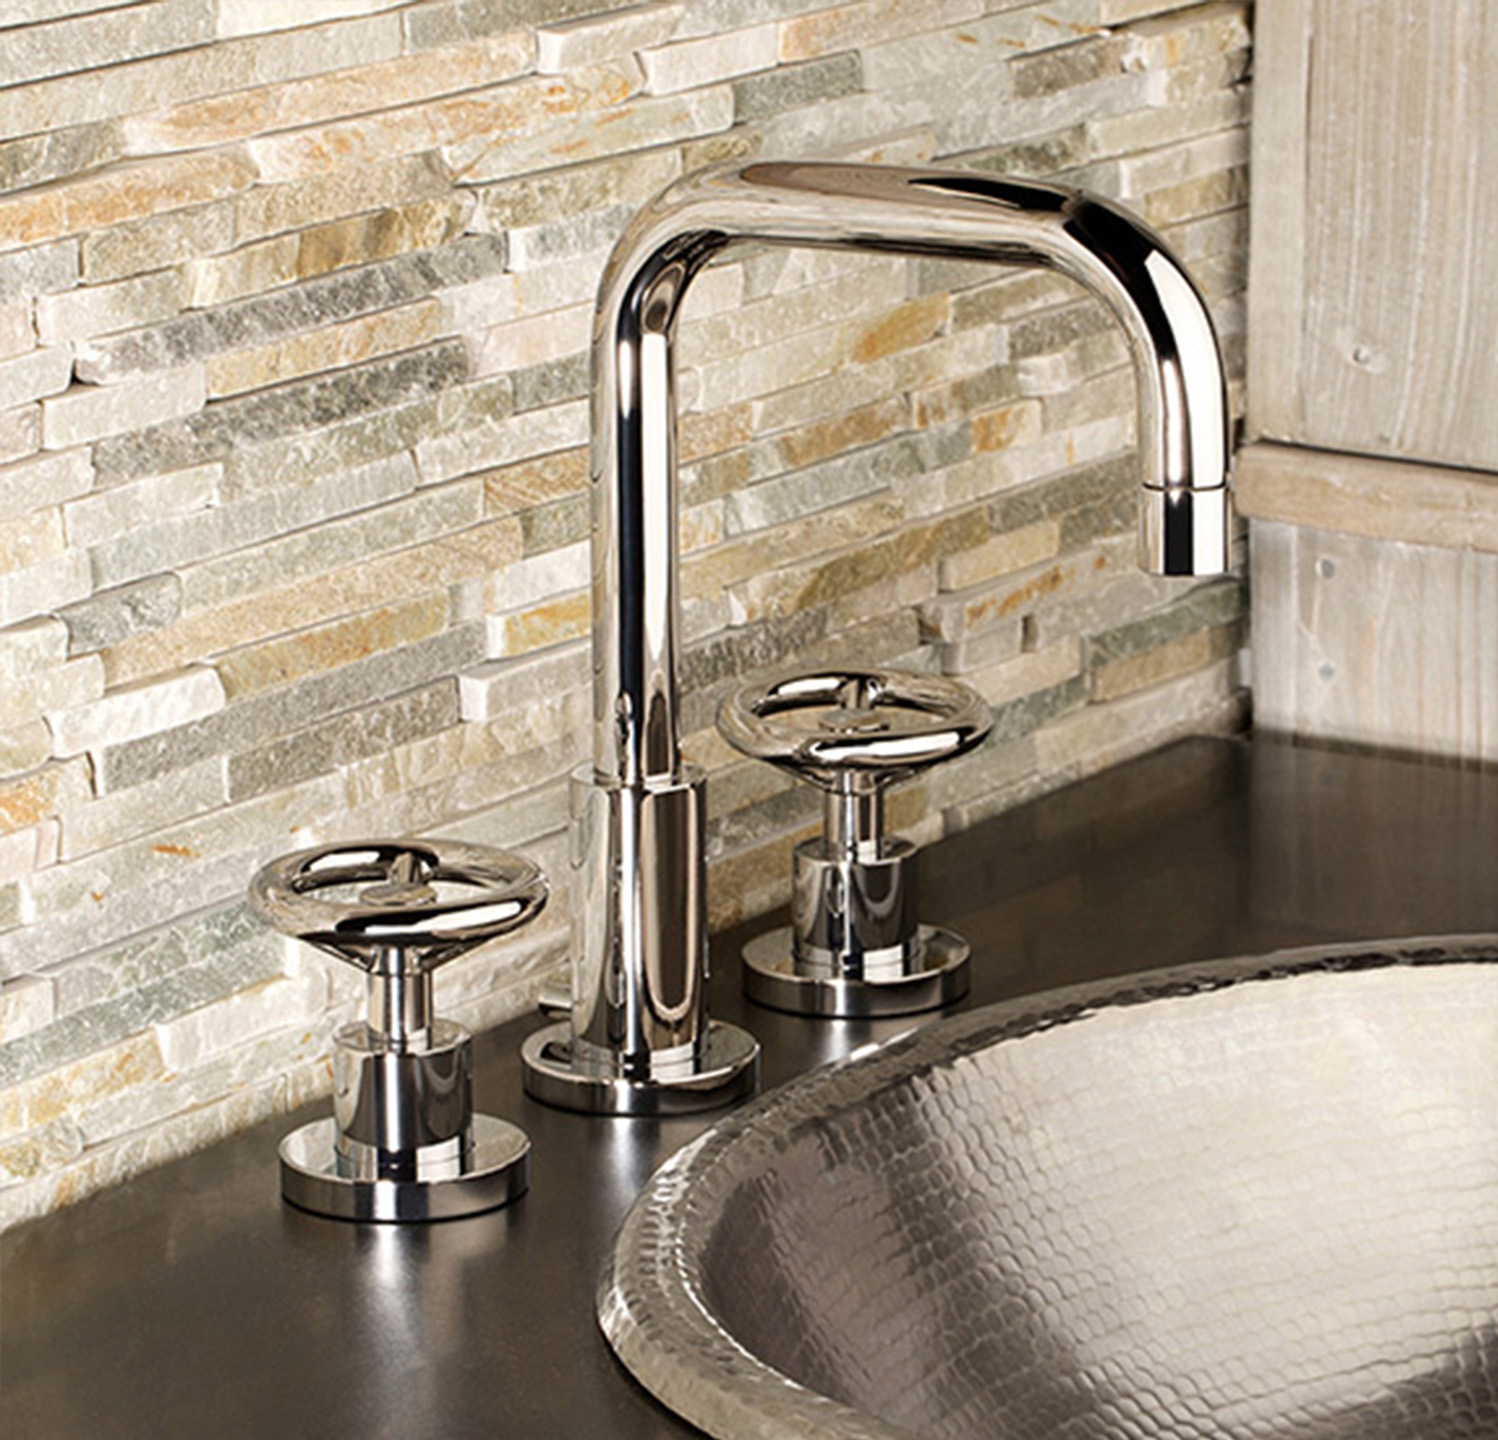 Tyler comes equipped with identical handles but features a geometrically shaped spout.